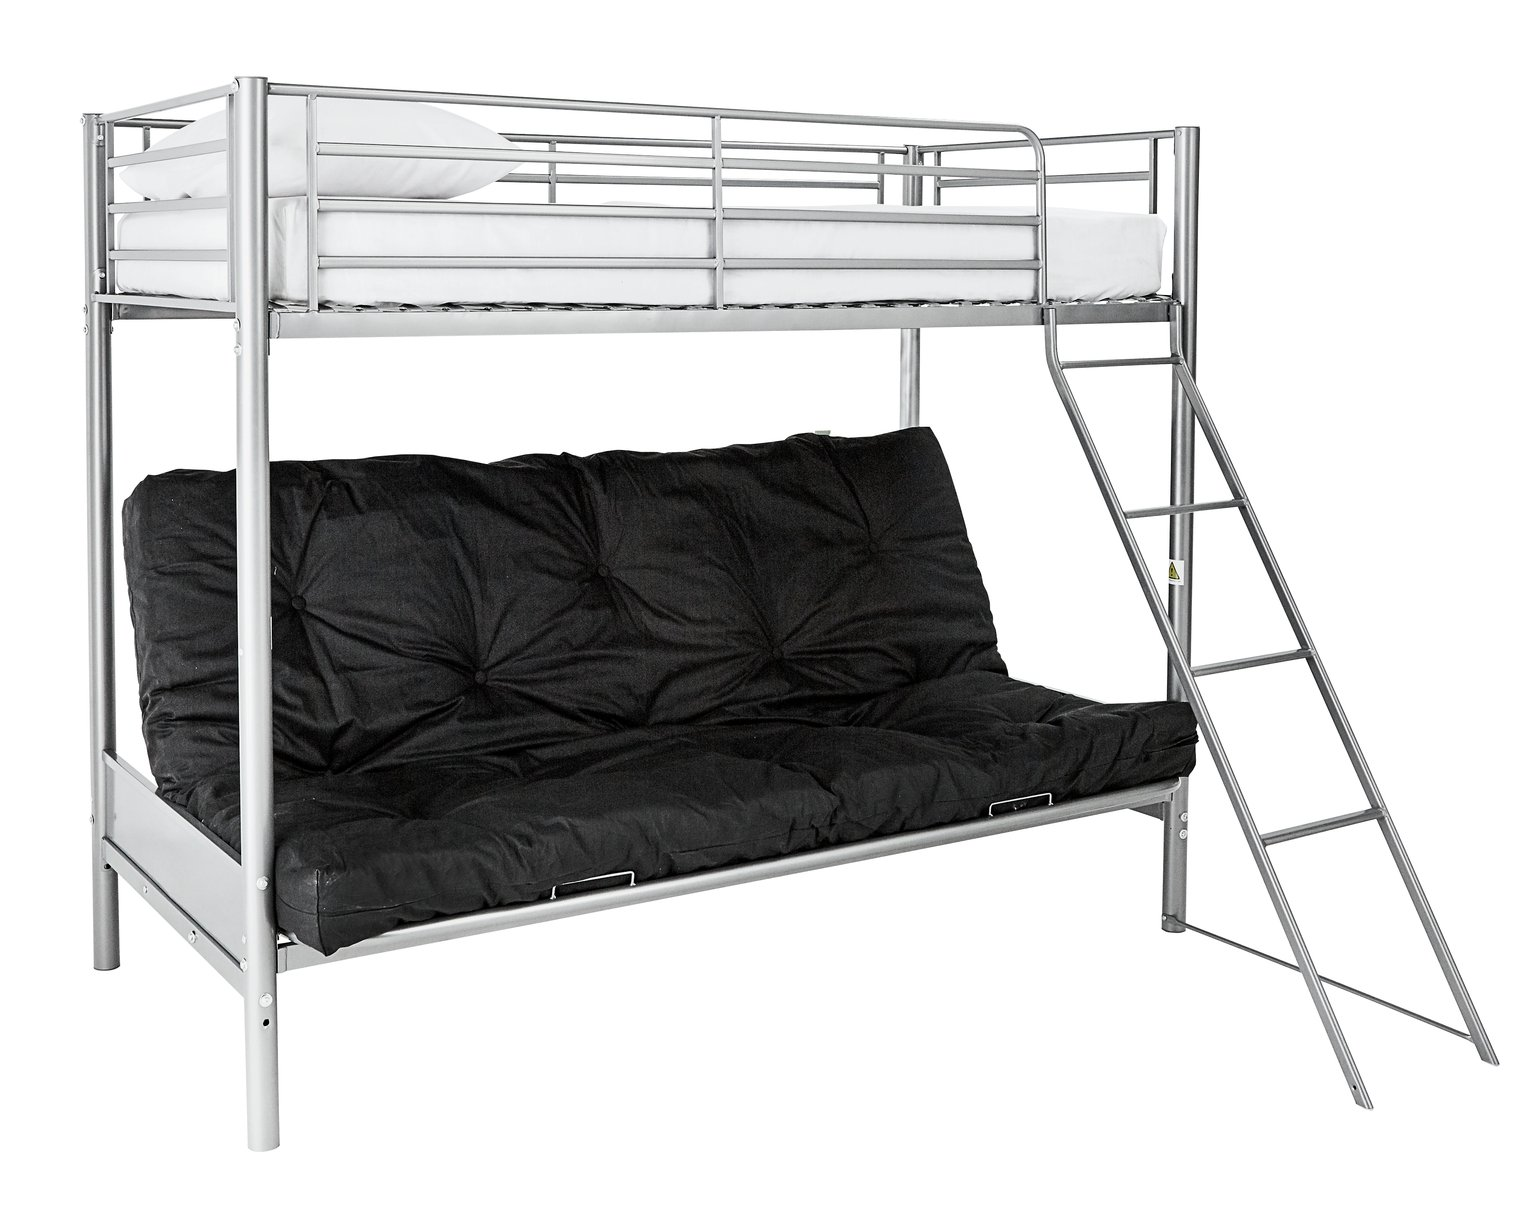 bunk beds with sofa bed underneath argos king single melbourne buy home metal frame black futon kids